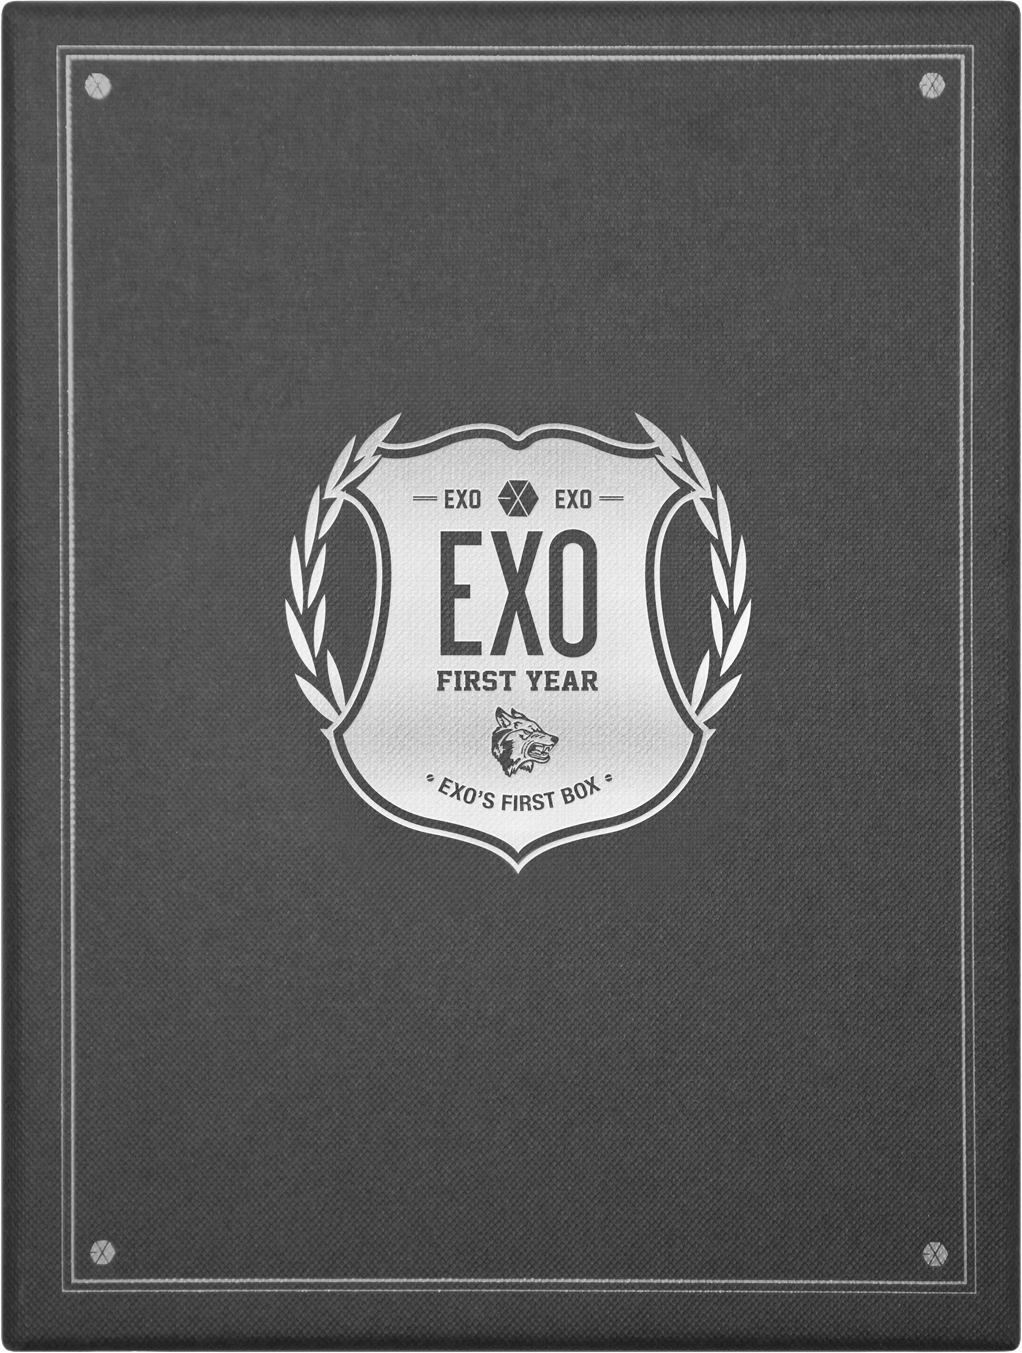 [DVD] EXO'S FIRST BOX